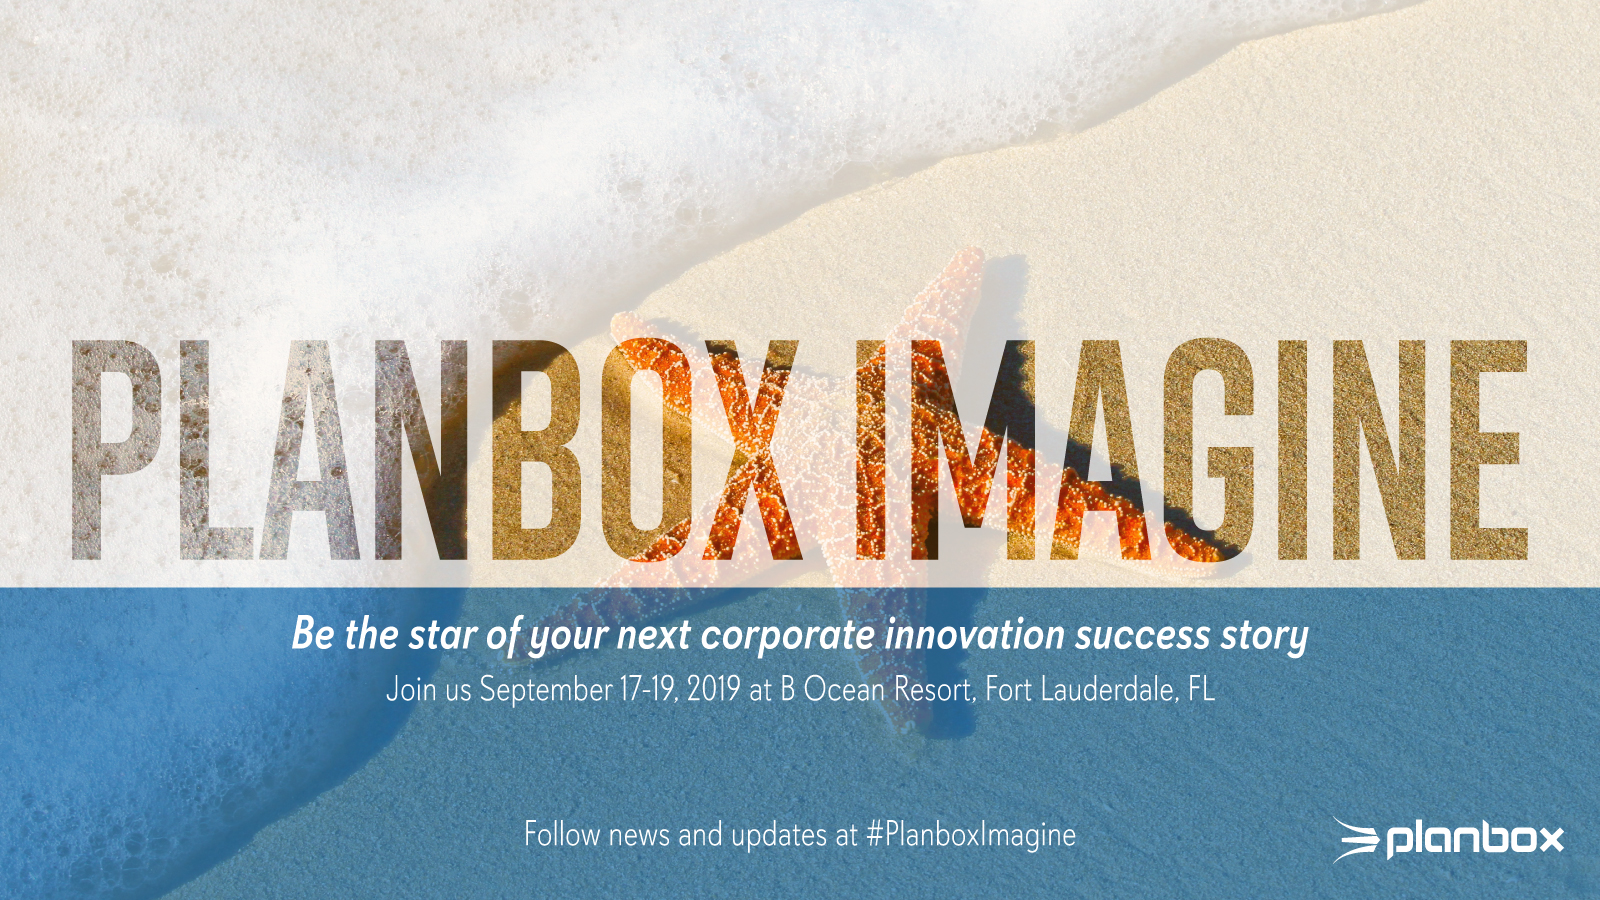 Planbox Hosts its 2019 Imagine Innovation User Conference on the